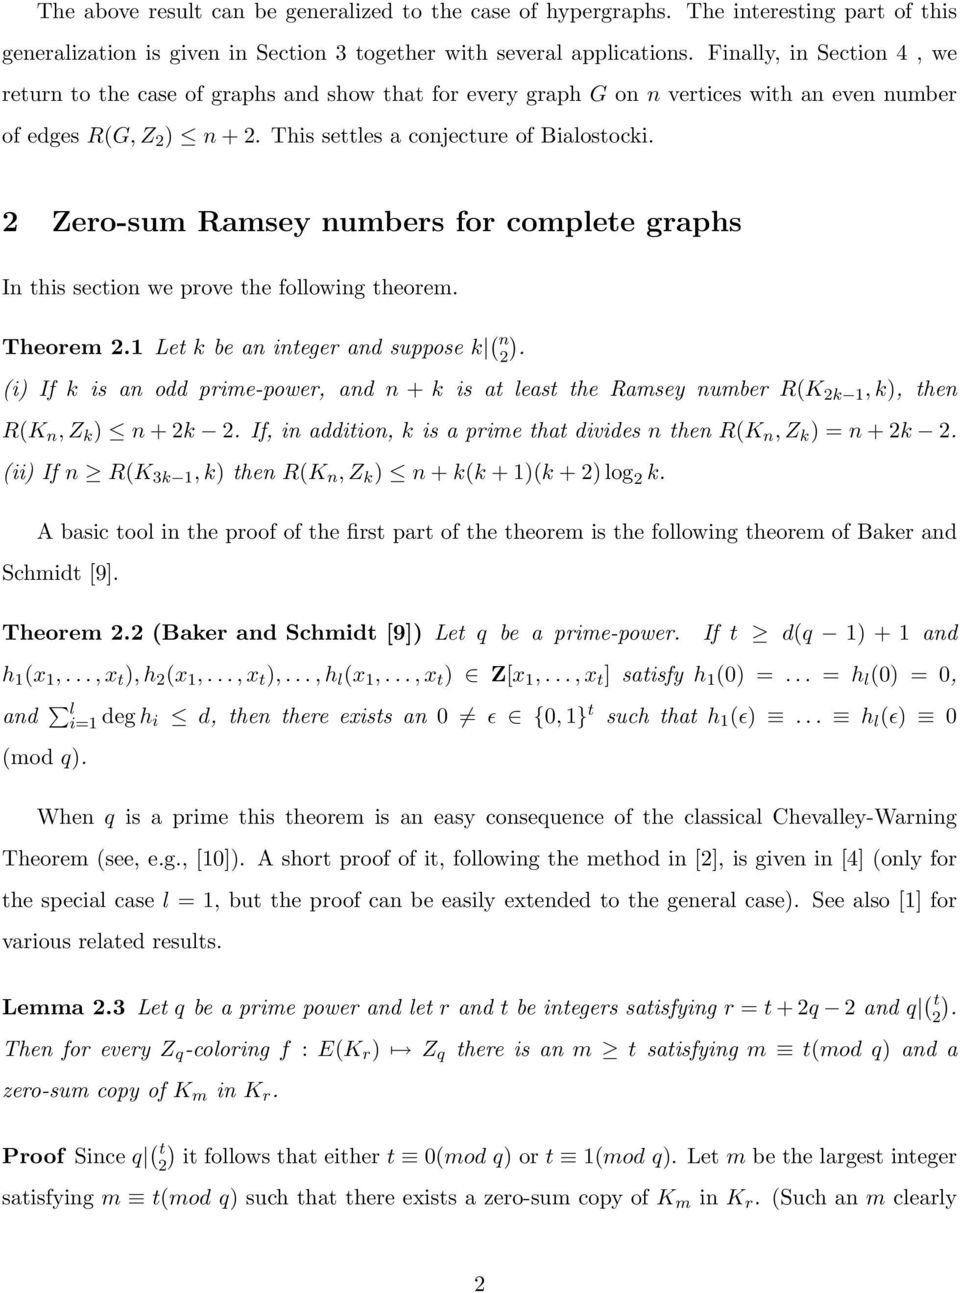 2 Zero-sum Ramsey numbers for complete graphs In this section we prove the following theorem. Theorem 2.1 Let k be an integer and suppose k ( n 2).